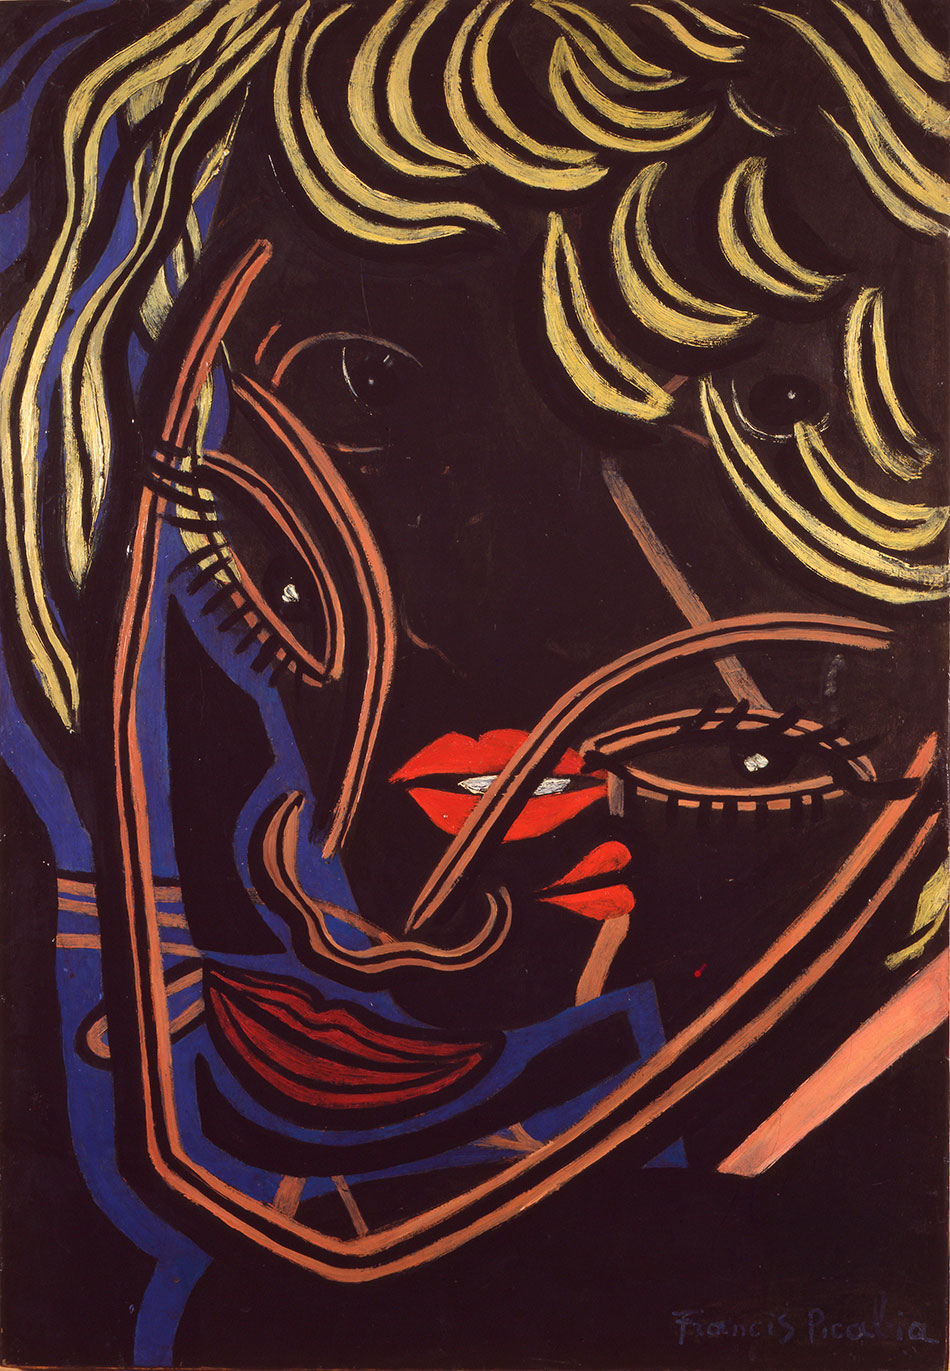 1938-francis-picabia-tetes-superposees